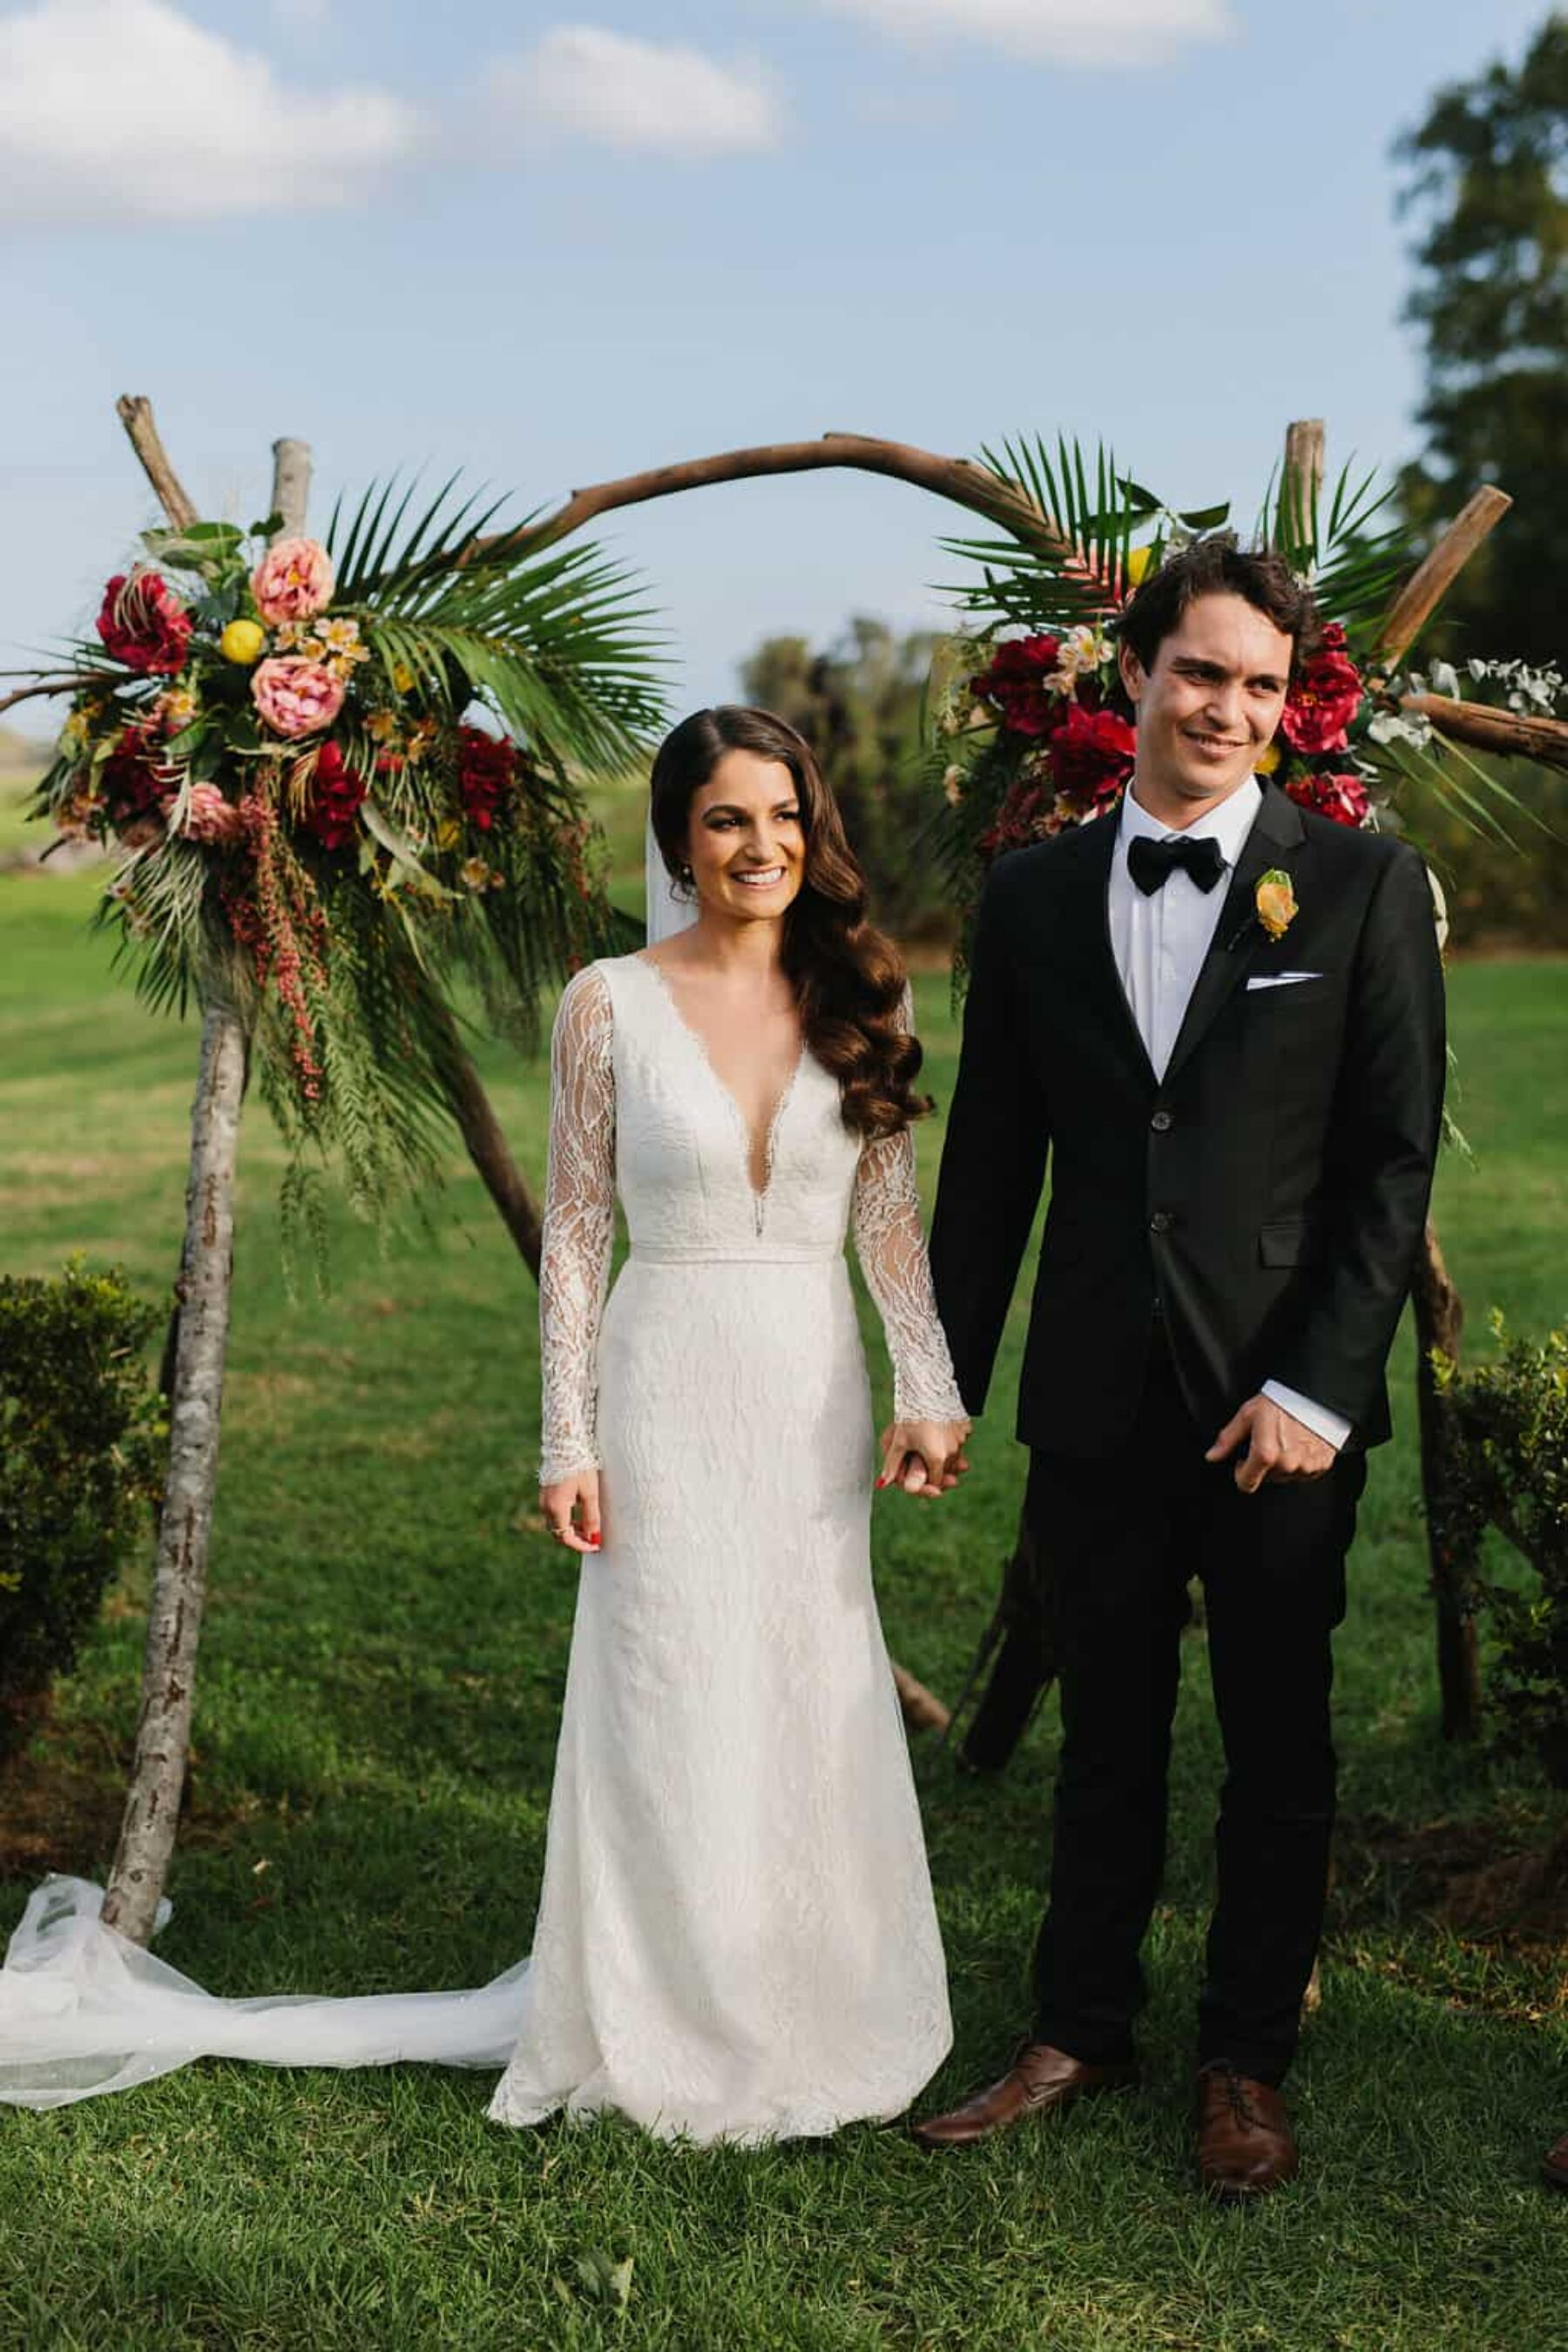 relaxed garden wedding at Merribee - photography by John Benavente